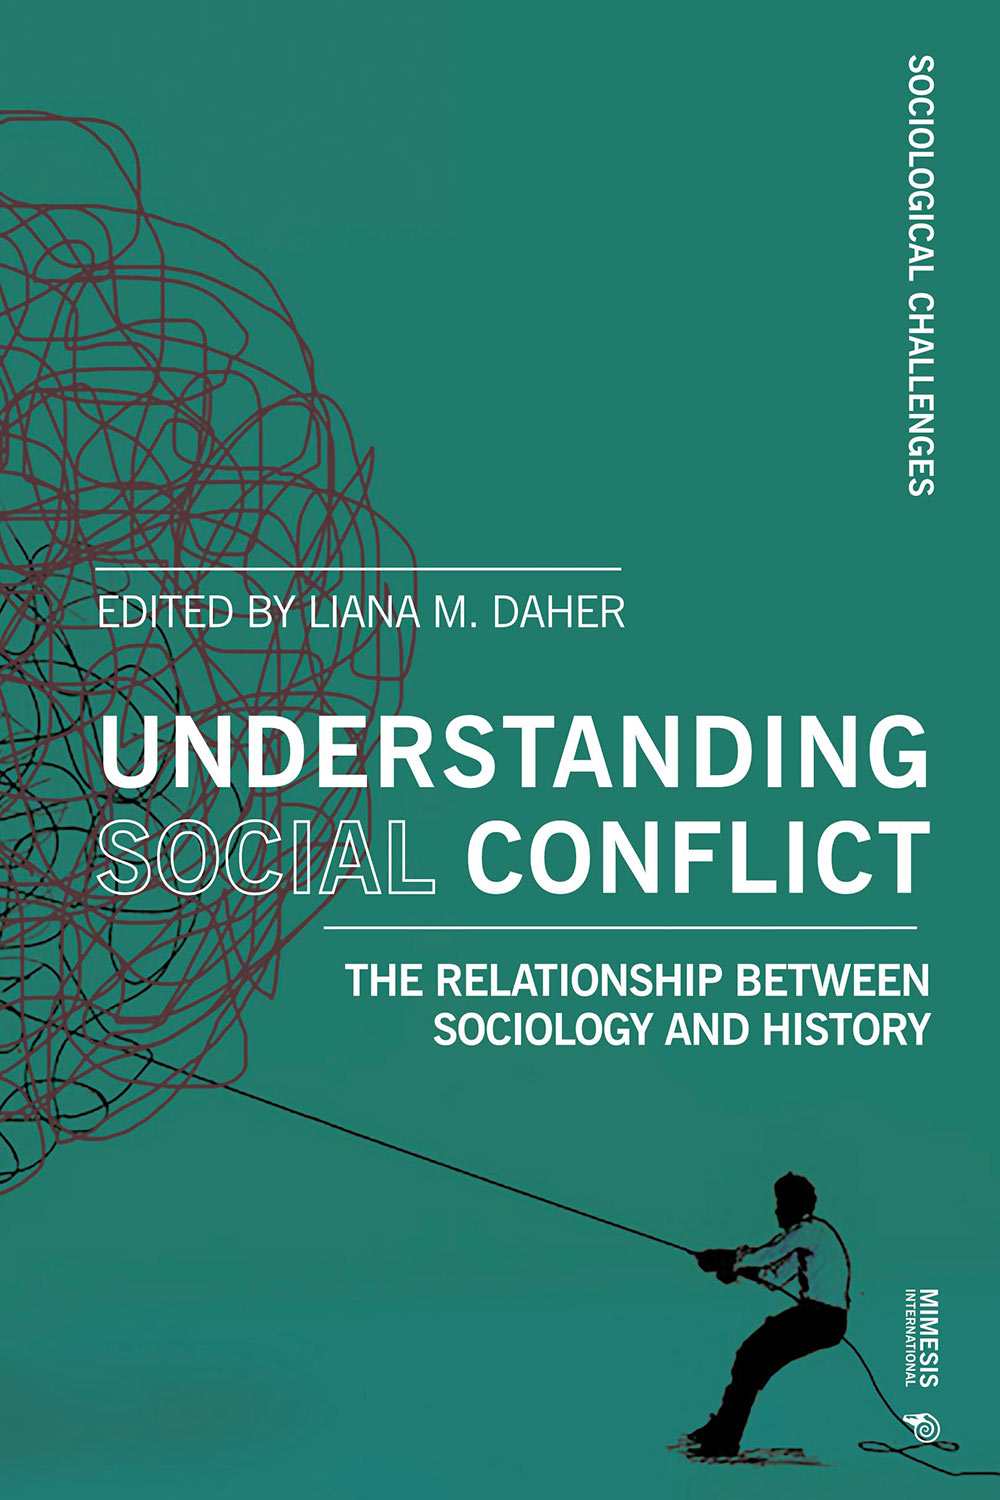 Understanding Social Conflict. The Relationship Between Sociology and History